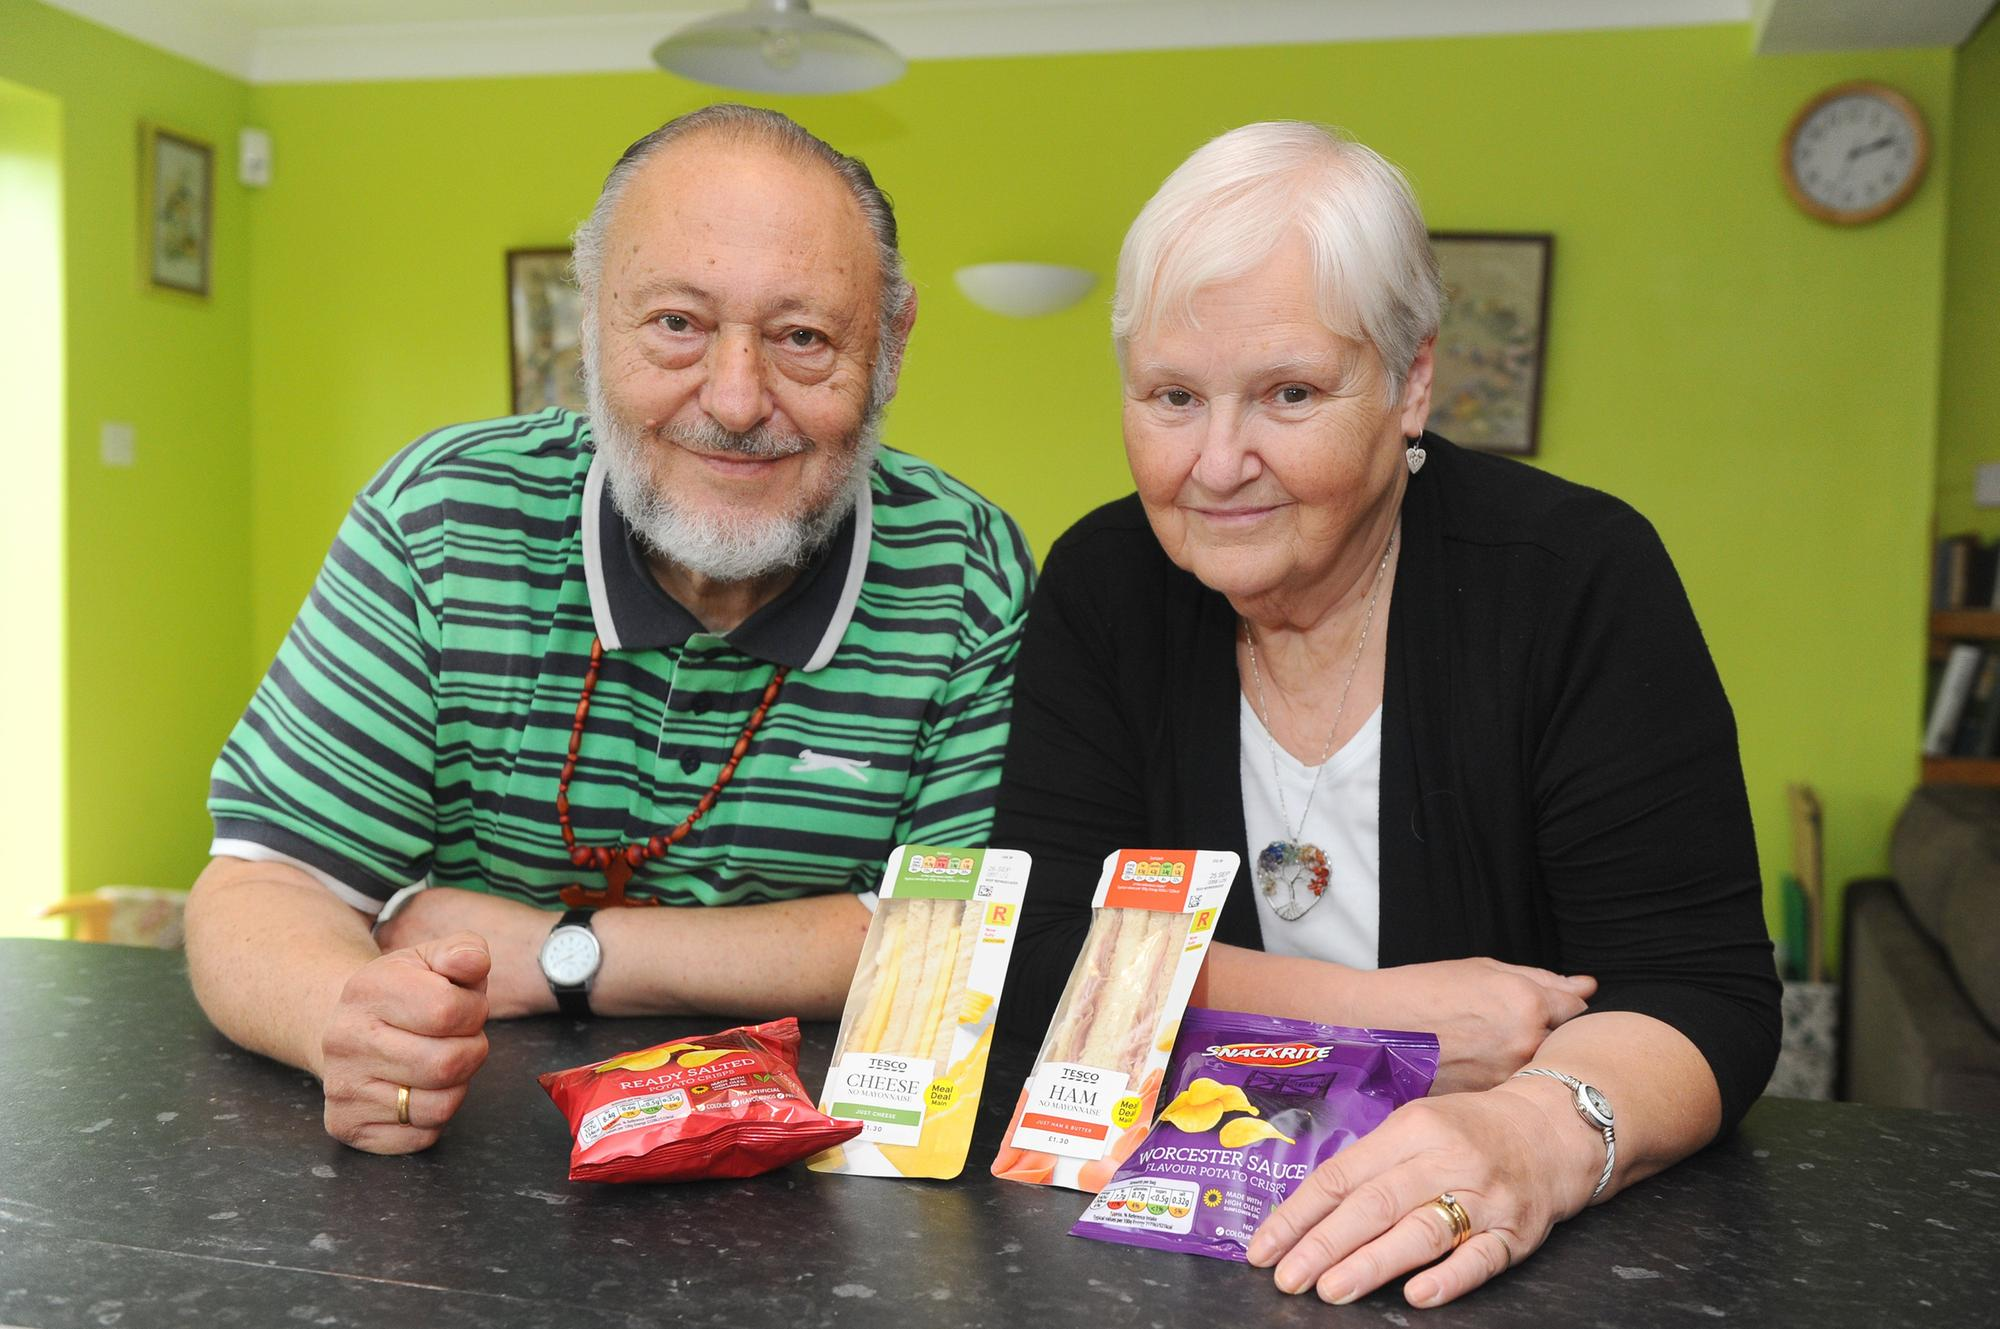 Kind Portsmouth couple offer free sandwiches to people struggling to feed families